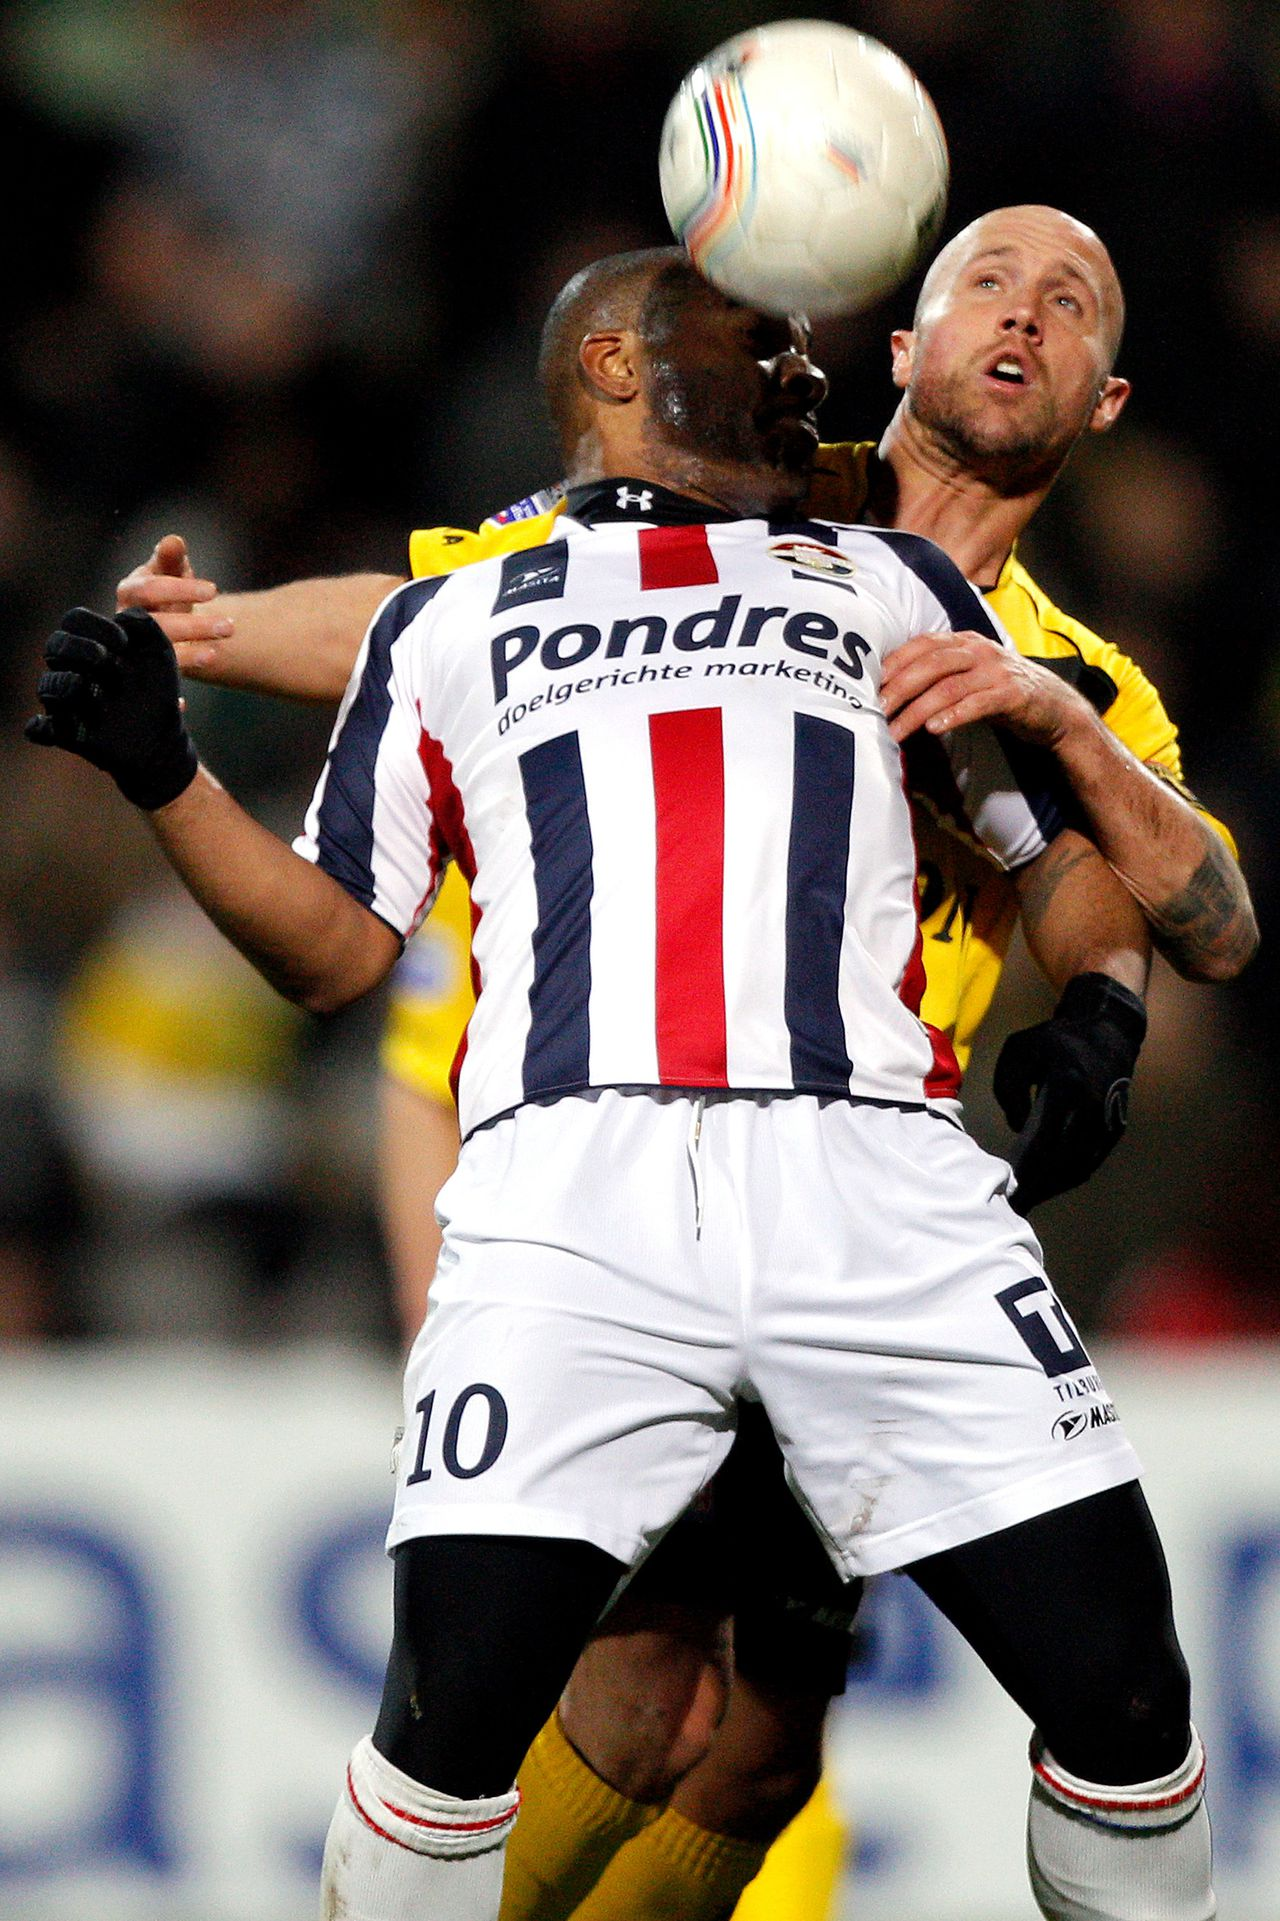 Onderwerp/Subject: VVV Venlo - Willem II - Eredivisie Reklame: Club/Team/Country: VVV Venlo - Willem II Seizoen/Season: 2010/2011 FOTO/PHOTO: VVV Venlo's Balazs TOTH ( Jozsef Balazs Toth ) (BEHIND) in duel with Willem II's Maceo RIGTERS (FRONT). (Photo by PICS UNITED) Trefwoorden/Keywords: #04 $38 ±1279289473015 Photo- & Copyrights © PICS UNITED P.O. Box 7164 - 5605 BE EINDHOVEN (THE NETHERLANDS) Phone +31 (0)40 296 28 00 Fax +31 (0) 40 248 47 43 http://www.pics-united.com e-mail : sales@pics-united.com (If you would like to raise any issues regarding any aspects of products / service of PICS UNITED) or e-mail : sales@pics-united.com ATTENTIE: Publicatie ook bij aanbieding door derden is slechts toegestaan na verkregen toestemming van Pics United. VOLLEDIGE NAAMSVERMELDING IS VERPLICHT! (© PICS UNITED/Naam Fotograaf, zie veld 4 van de bestandsinfo 'credits') ATTENTION: © Pics United. Reproduction/publication of this photo by any parties is only permitted after authorisation is sought and obtained from PICS UNITED- THE NETHERLANDS